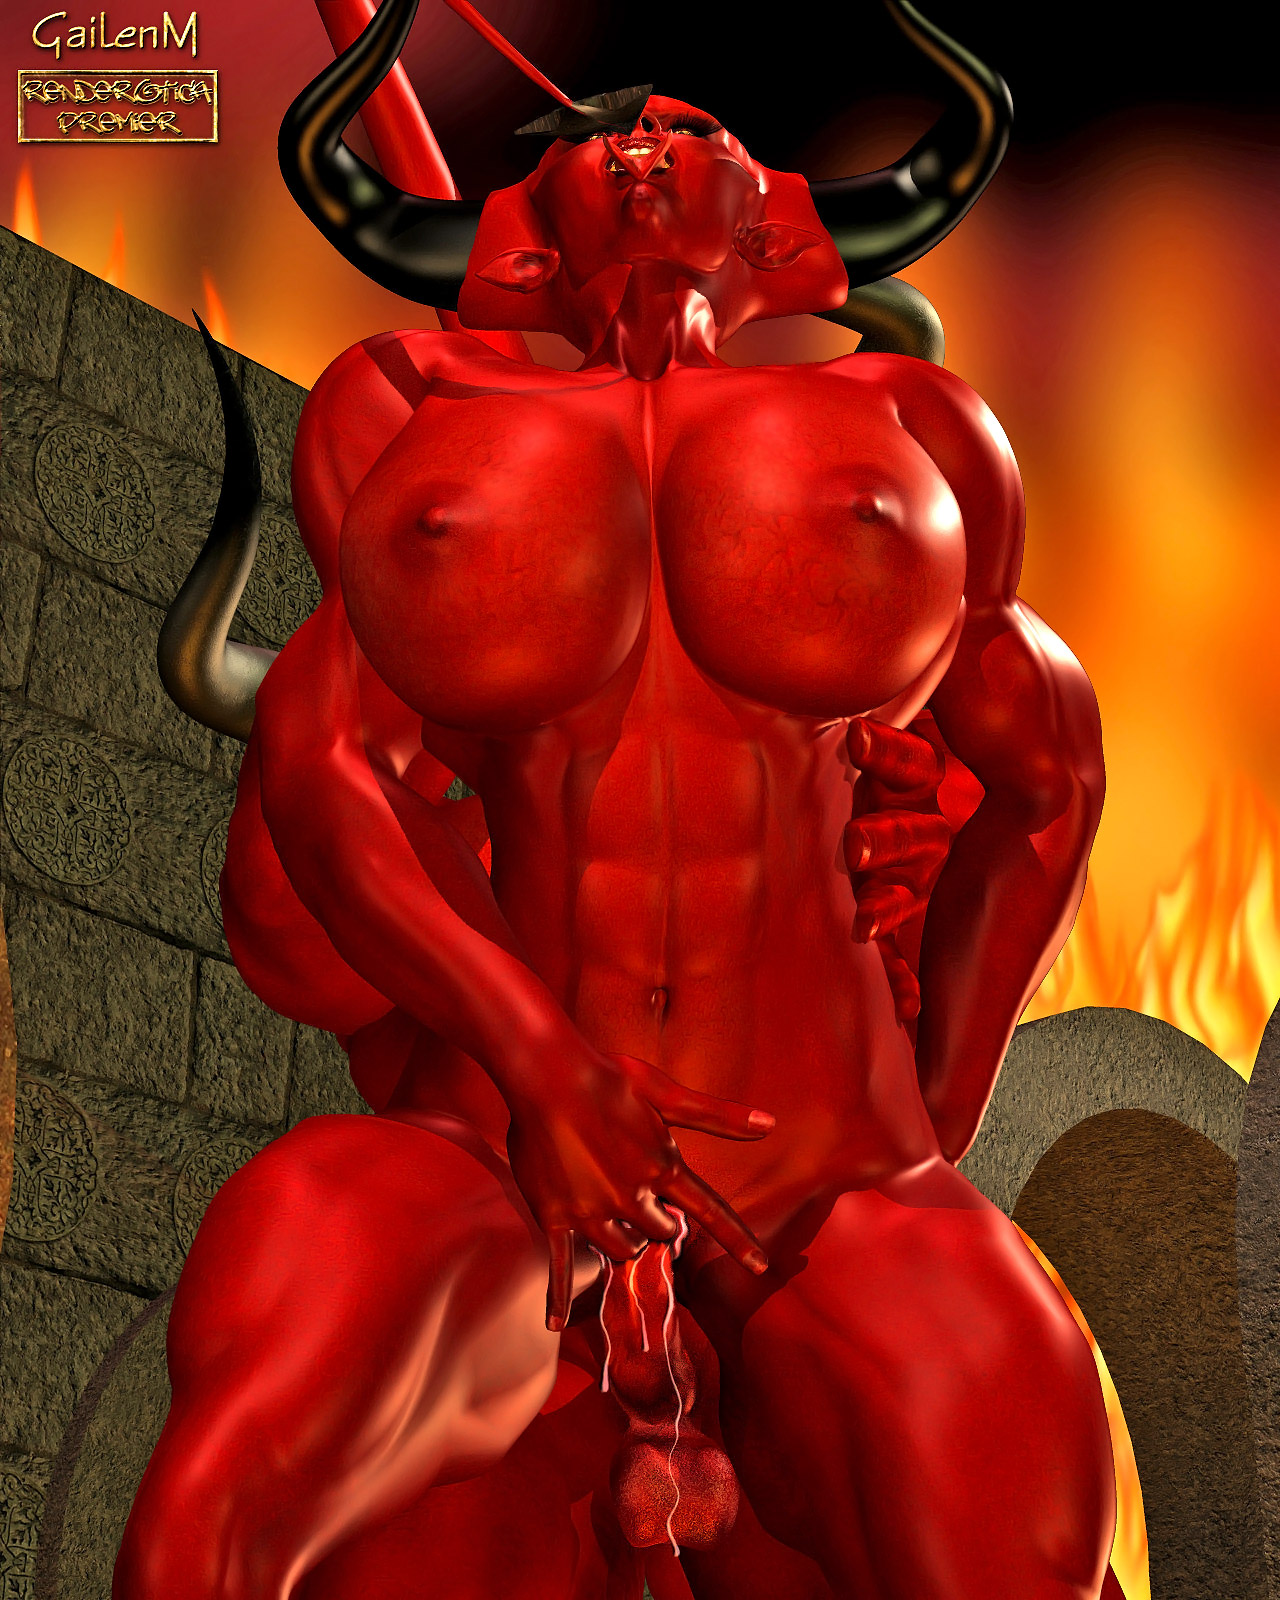 Cartoon demons fucking girls nudes galleries